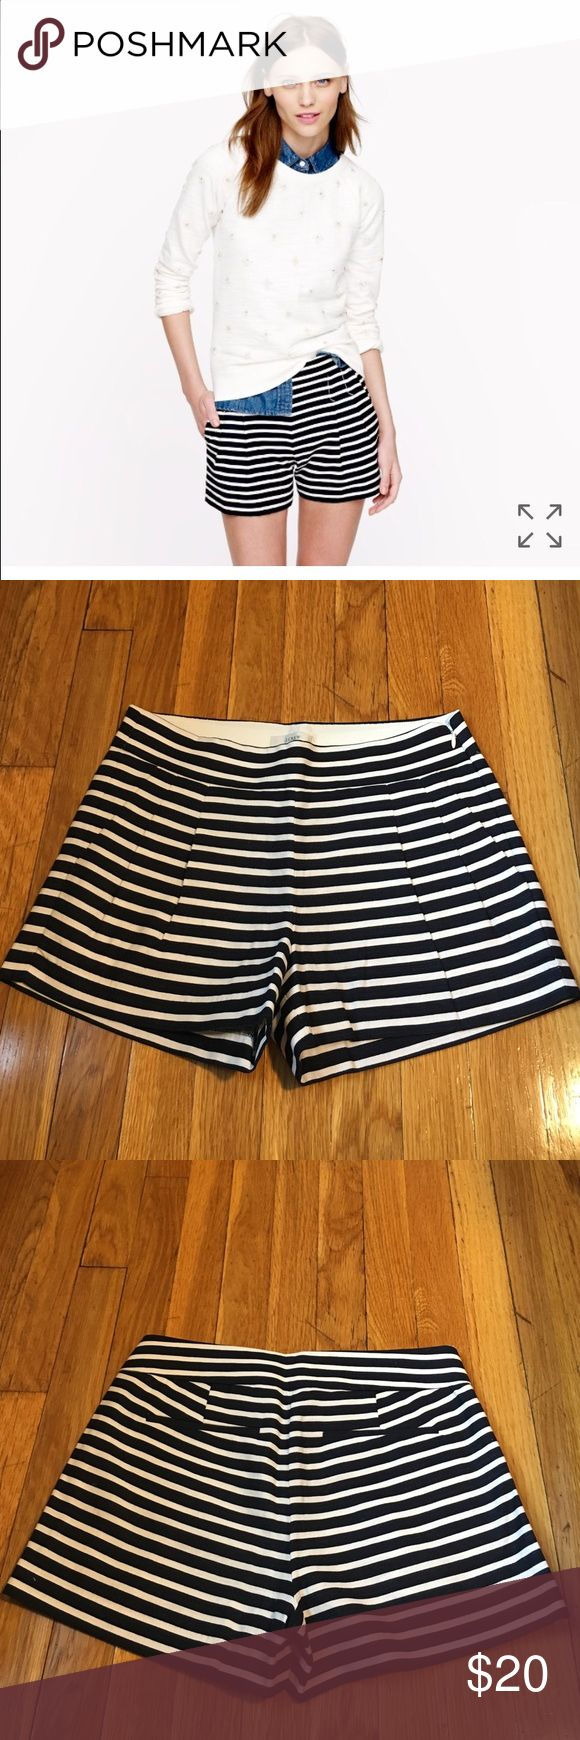 """Jcrew pleated shorts in nautical stripe Adorable pleated shorts wth nautical stripe from jcrew. Crisp look with a slightly flared silhouette.  Worn once and in incredible condition.   True to size. Higher rise. Linen/cotton. Sits below waist. 3"""" inseam. Side zip. Dry clean. Item 82107. J. Crew Shorts"""